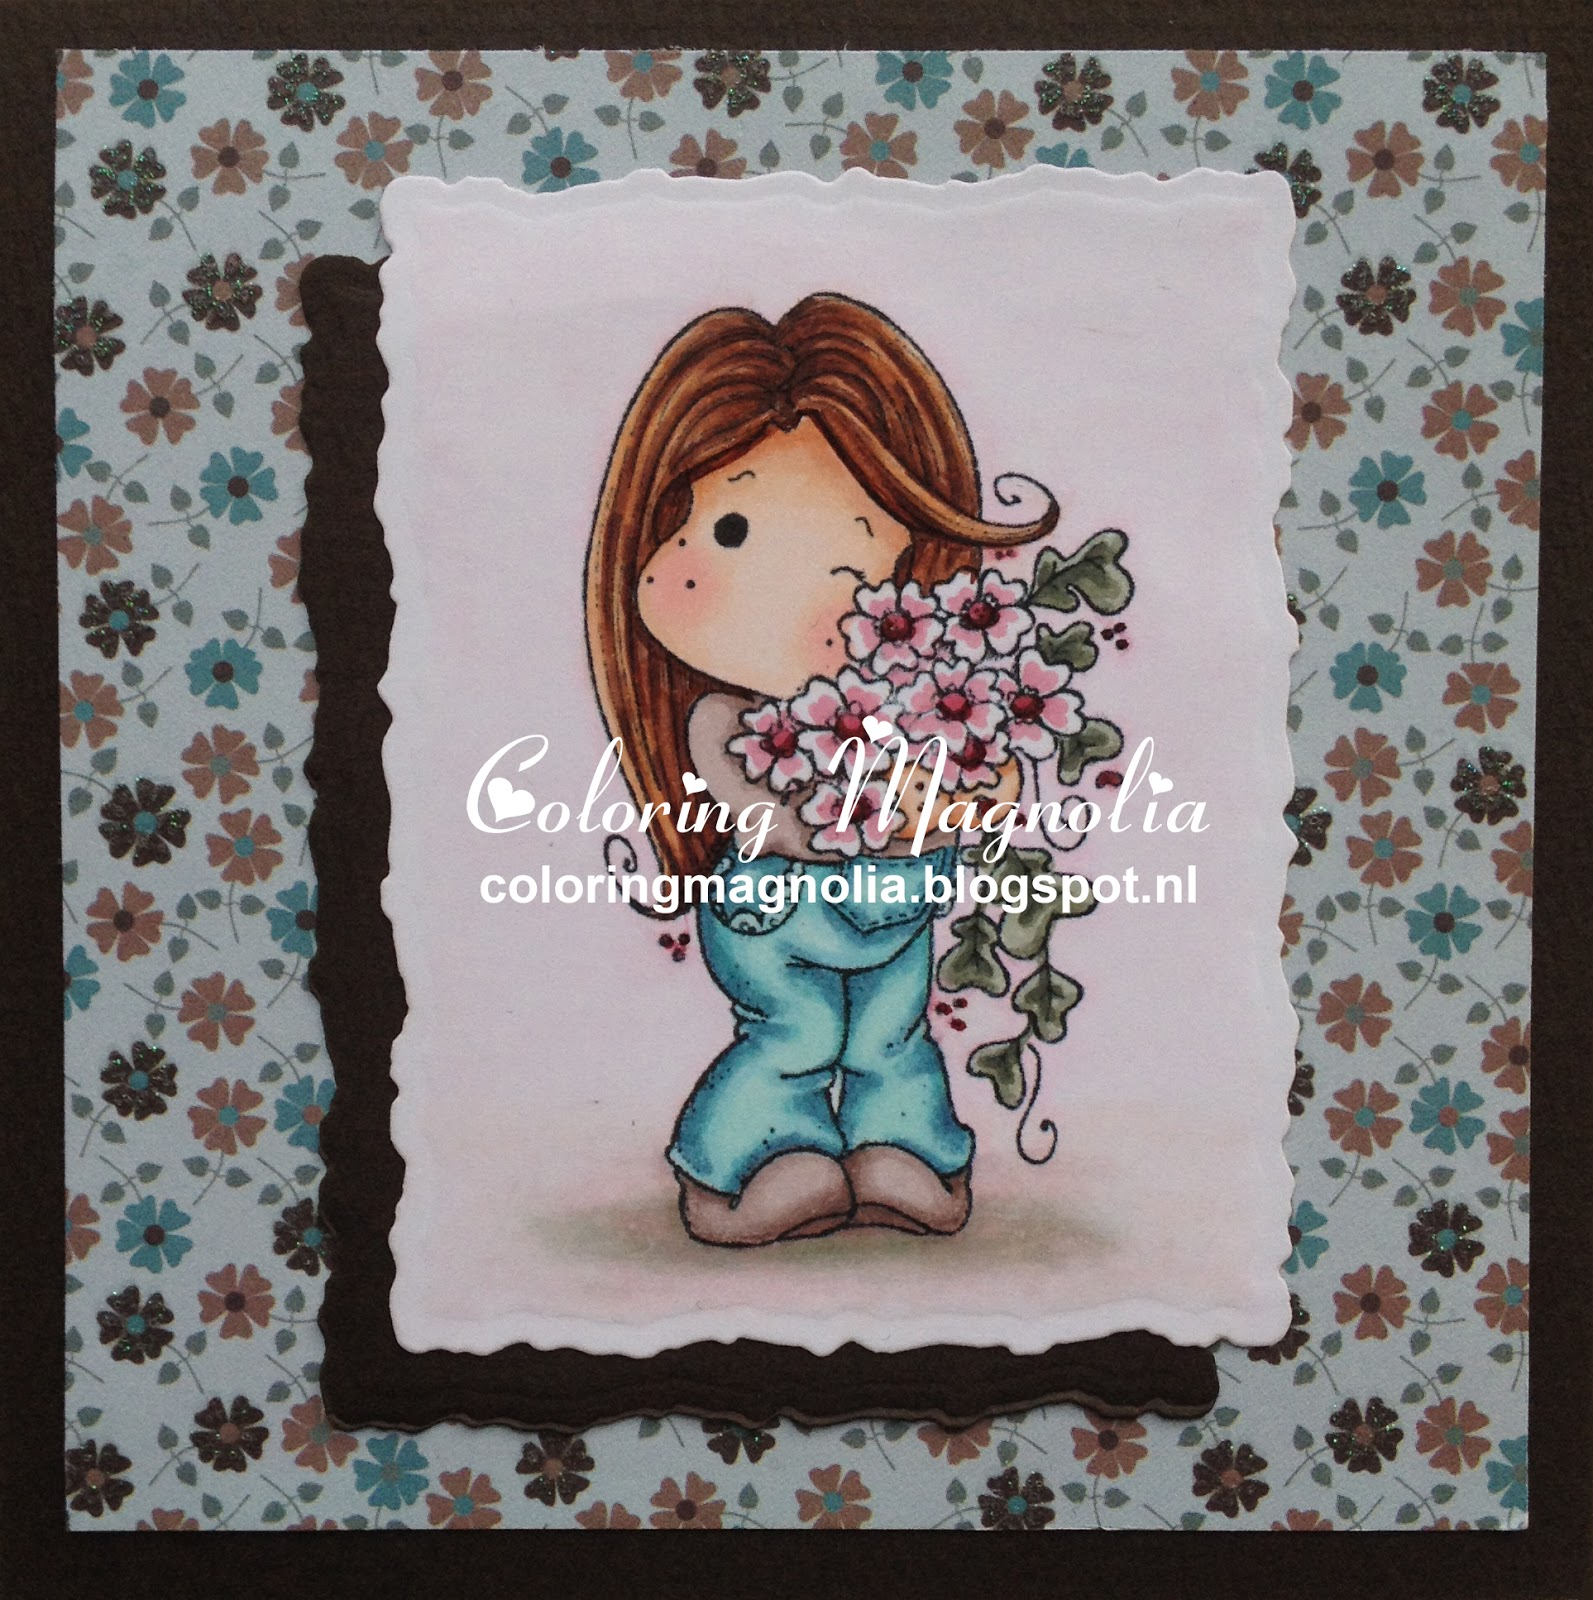 Coloring Magnolia Stamp 2013 Winter Wonderland Collection - New Year Sakura Tilda